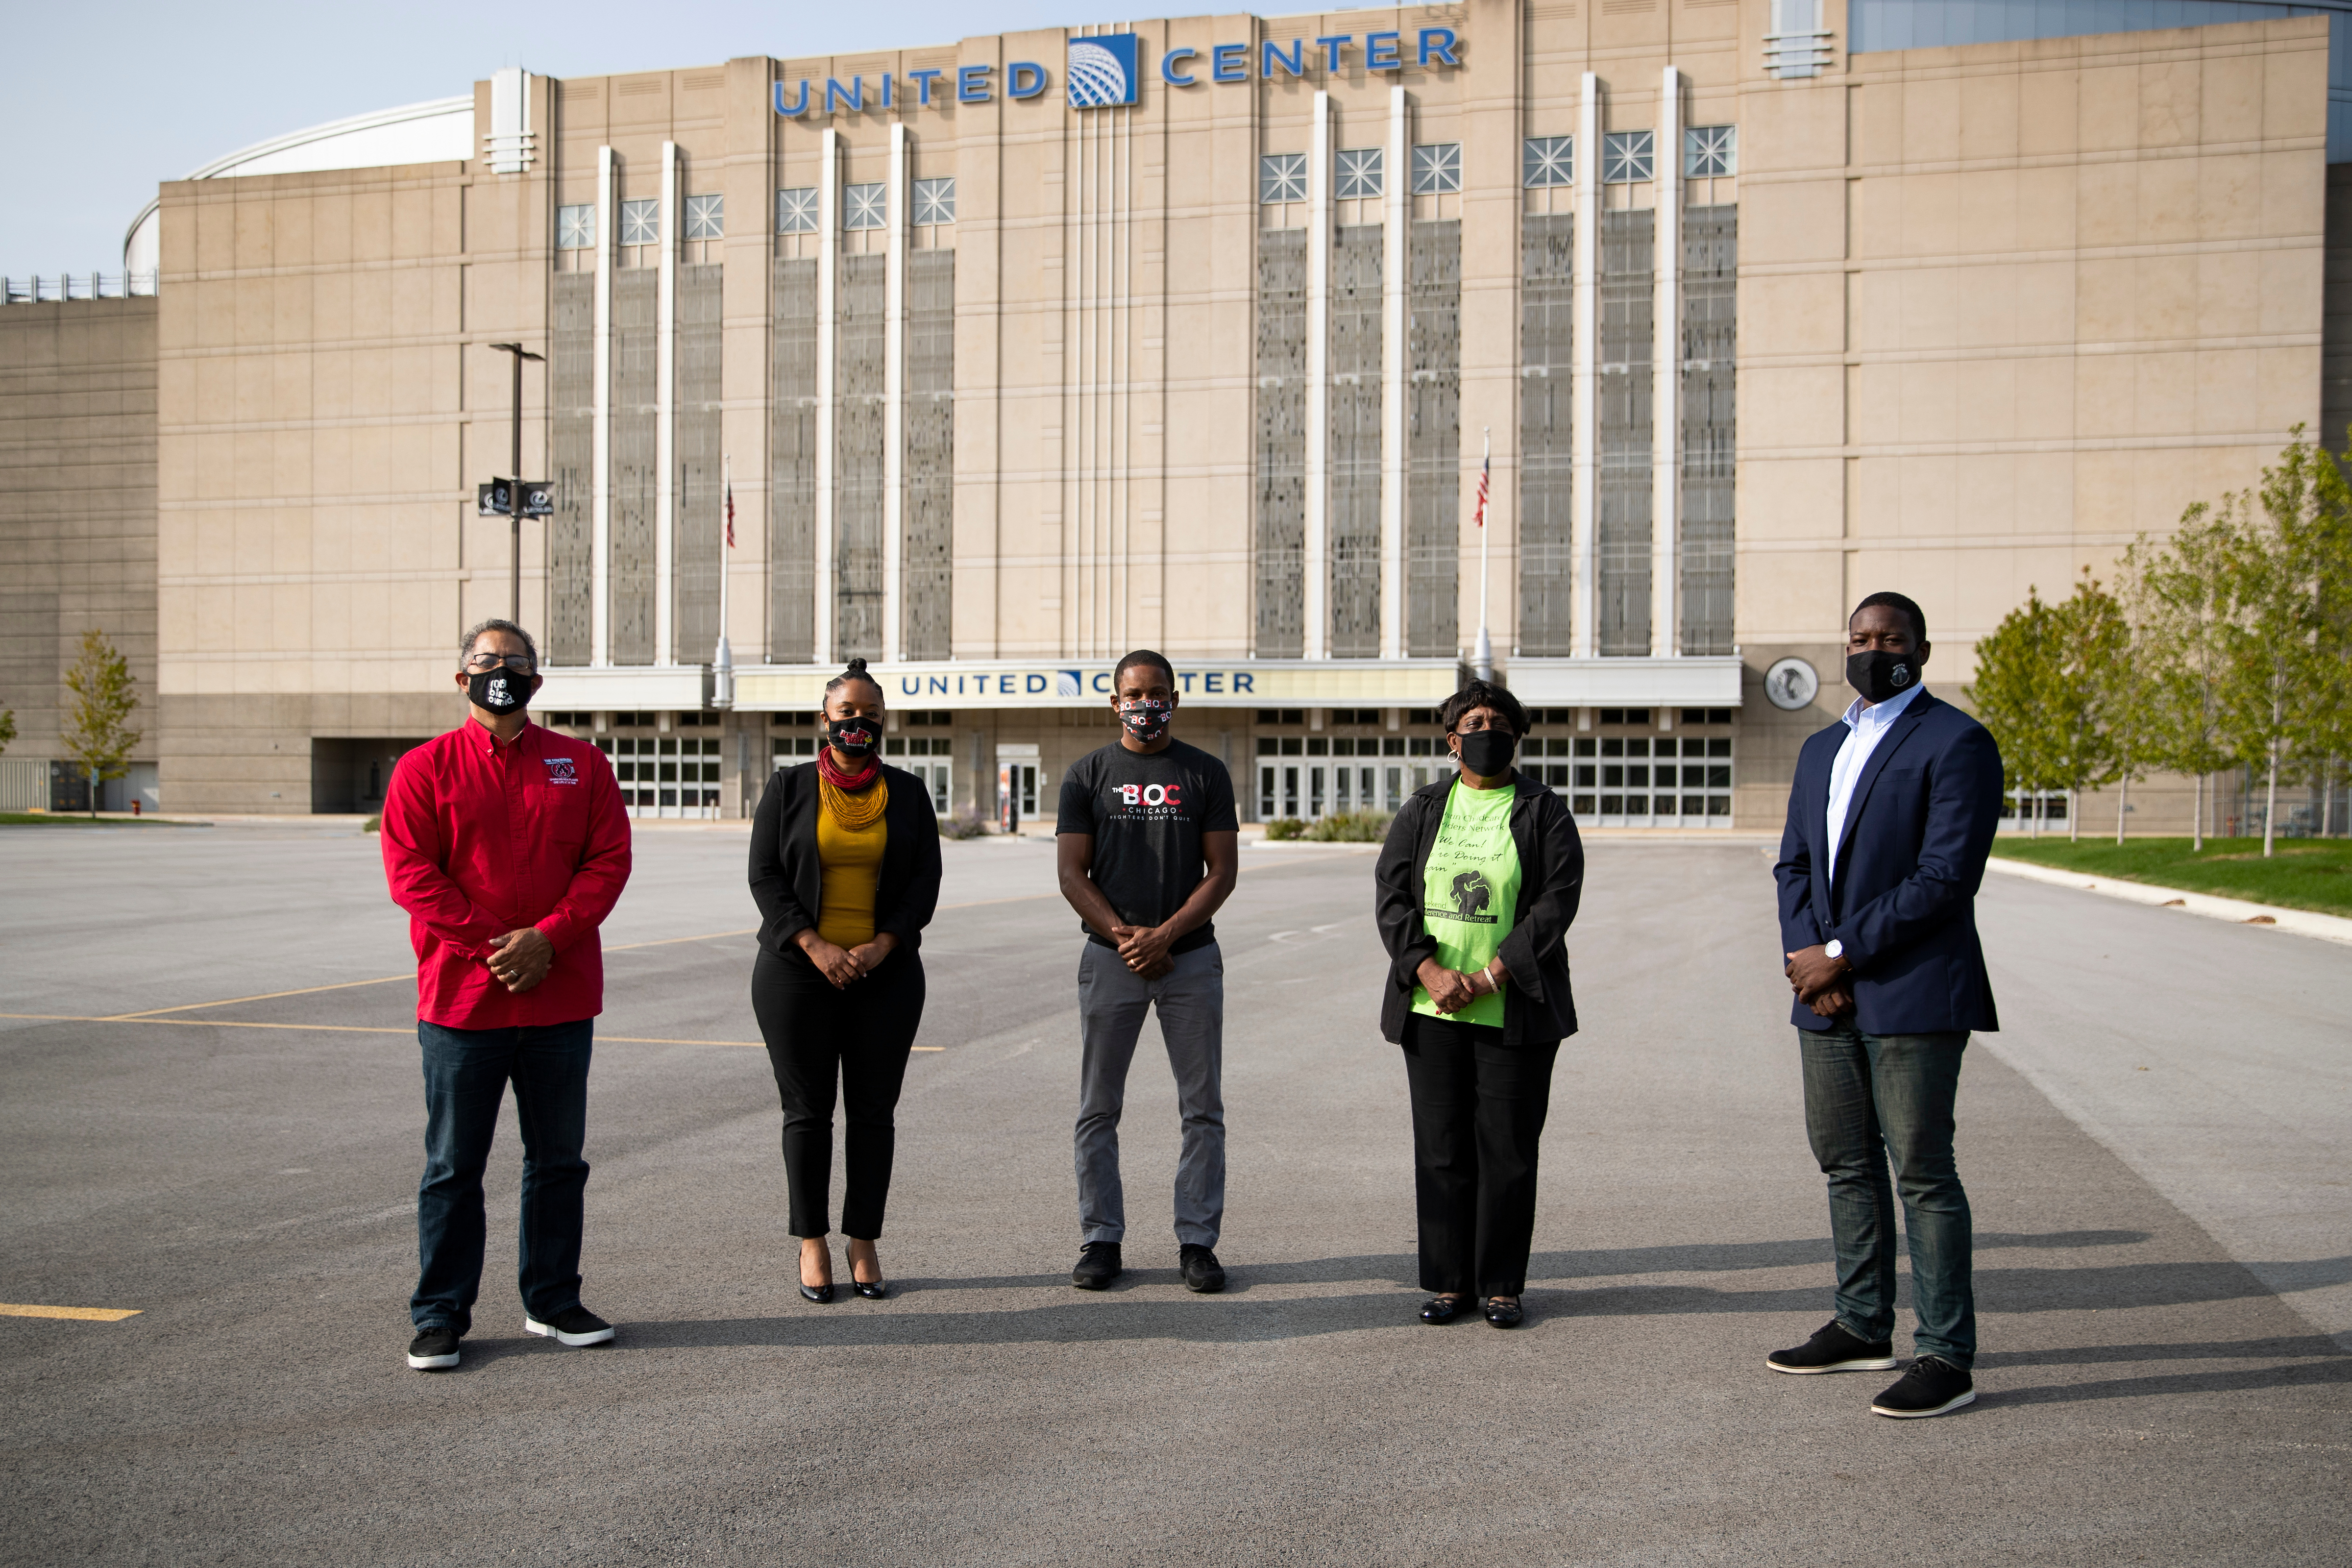 The five inaugural recipients of One West Side grants — Phil Jackson (from left), Ayesha Jaco, Jamyle Cannon, Ruth Kimble and Marshall Hatch — outside the United Center.